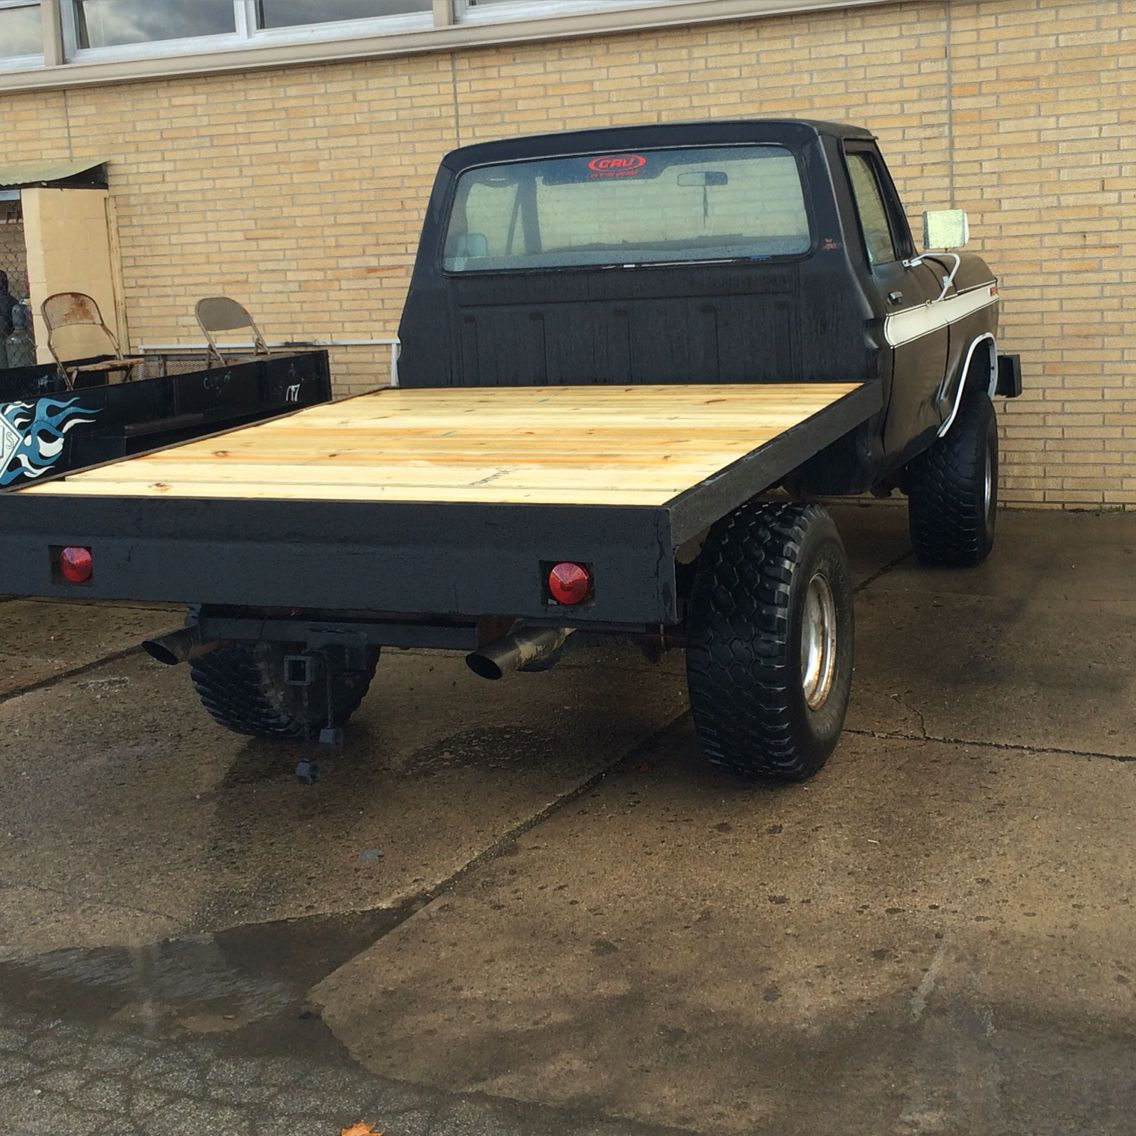 1978 Ford F150 ranger that a welded and made a flatbed to